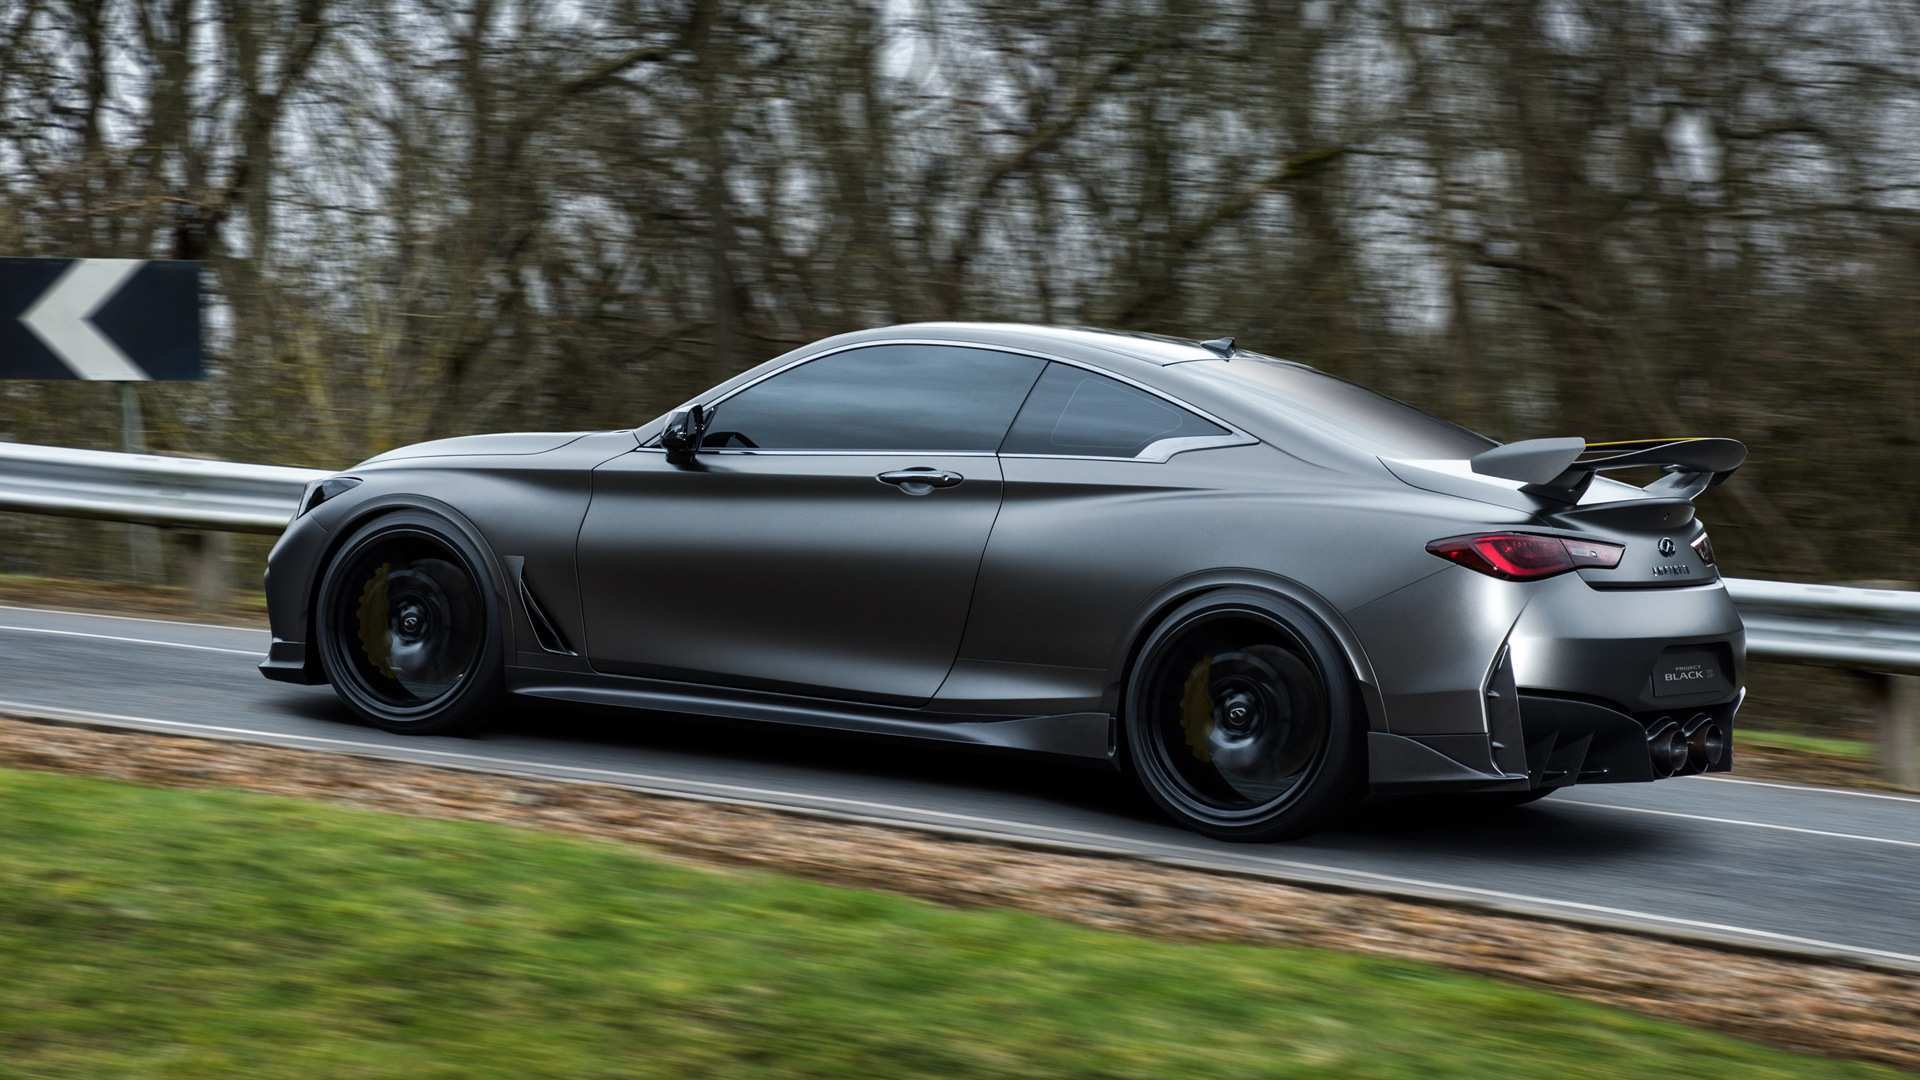 54 The Best 2020 Infiniti Q60s Redesign And Concept